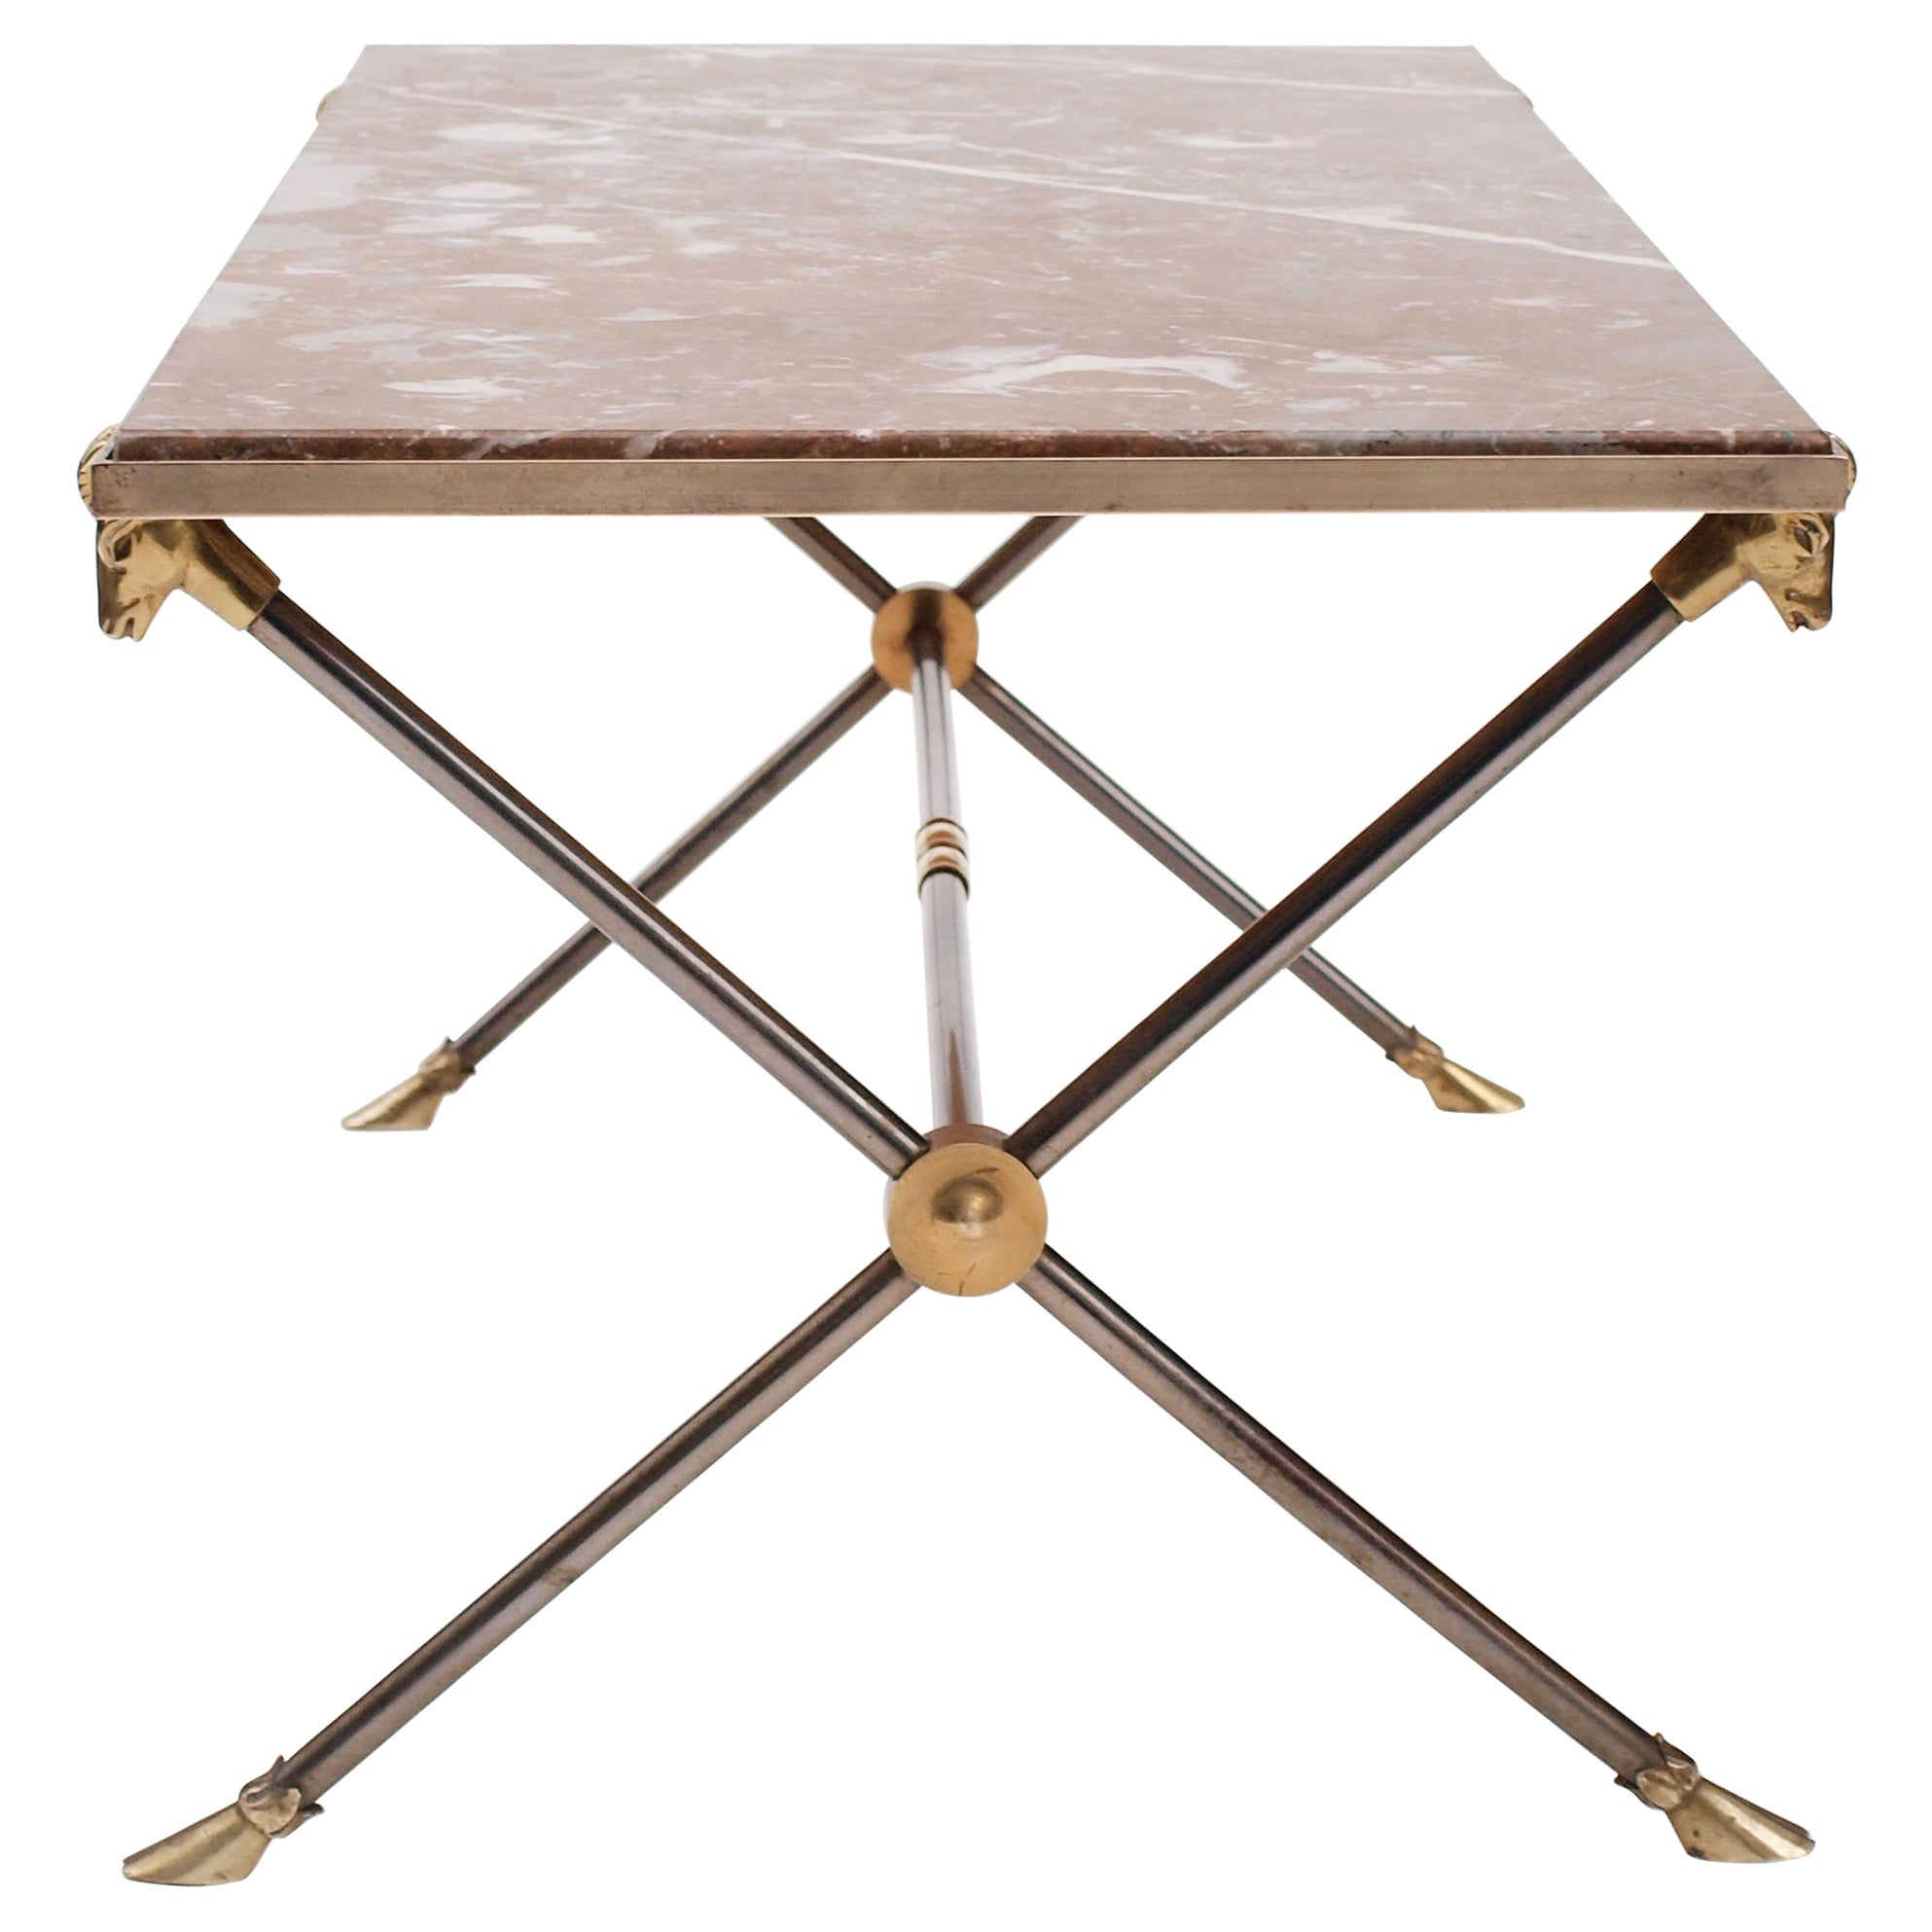 Attributed to Maison Ramsay Rams Head Brass and  Nickel Coffee Table